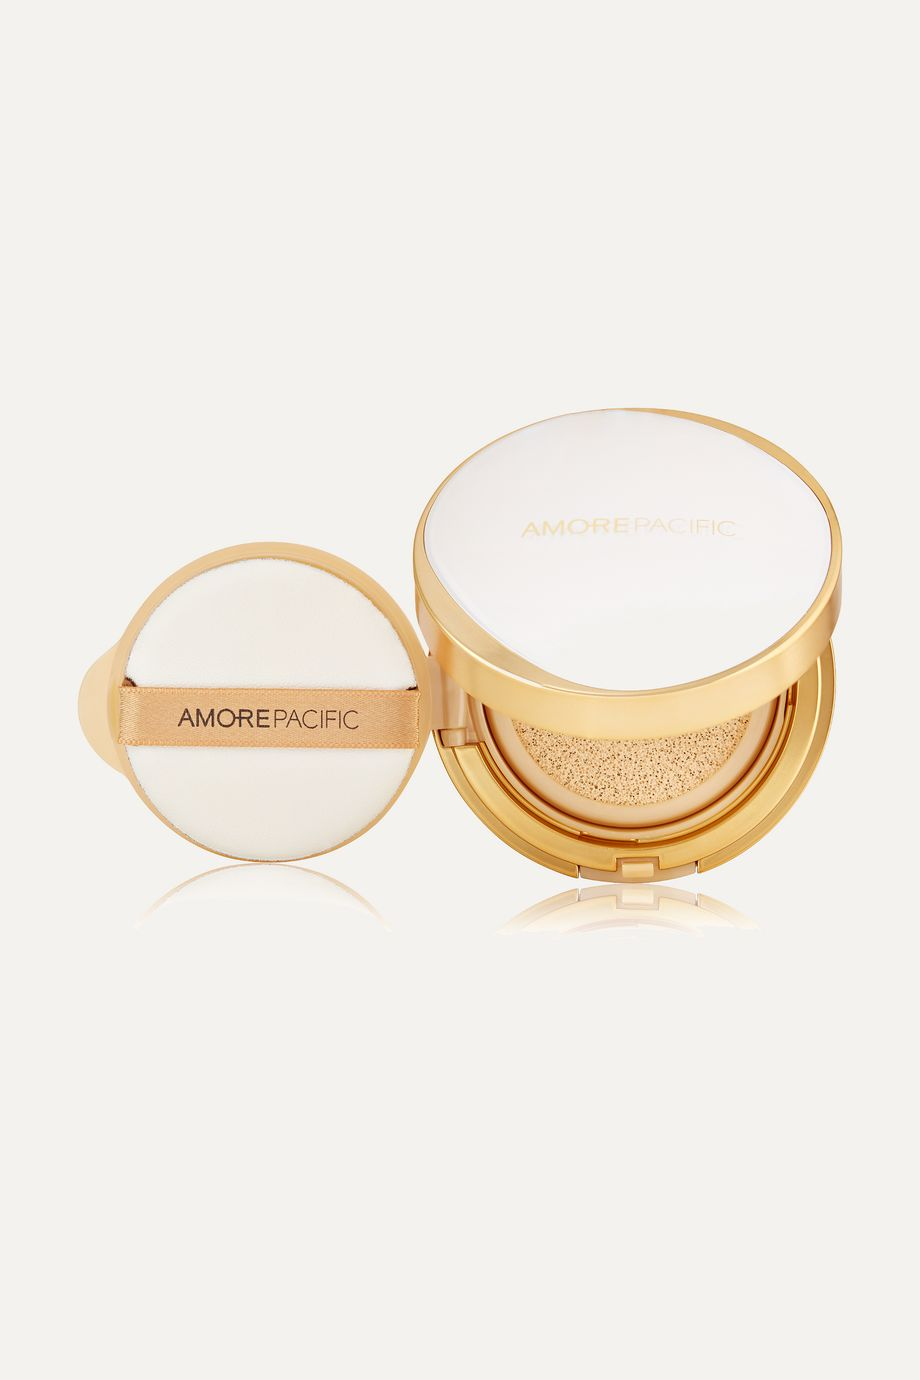 AMOREPACIFIC Sun Protection Cushion Broad Spectrum SPF30, 15g